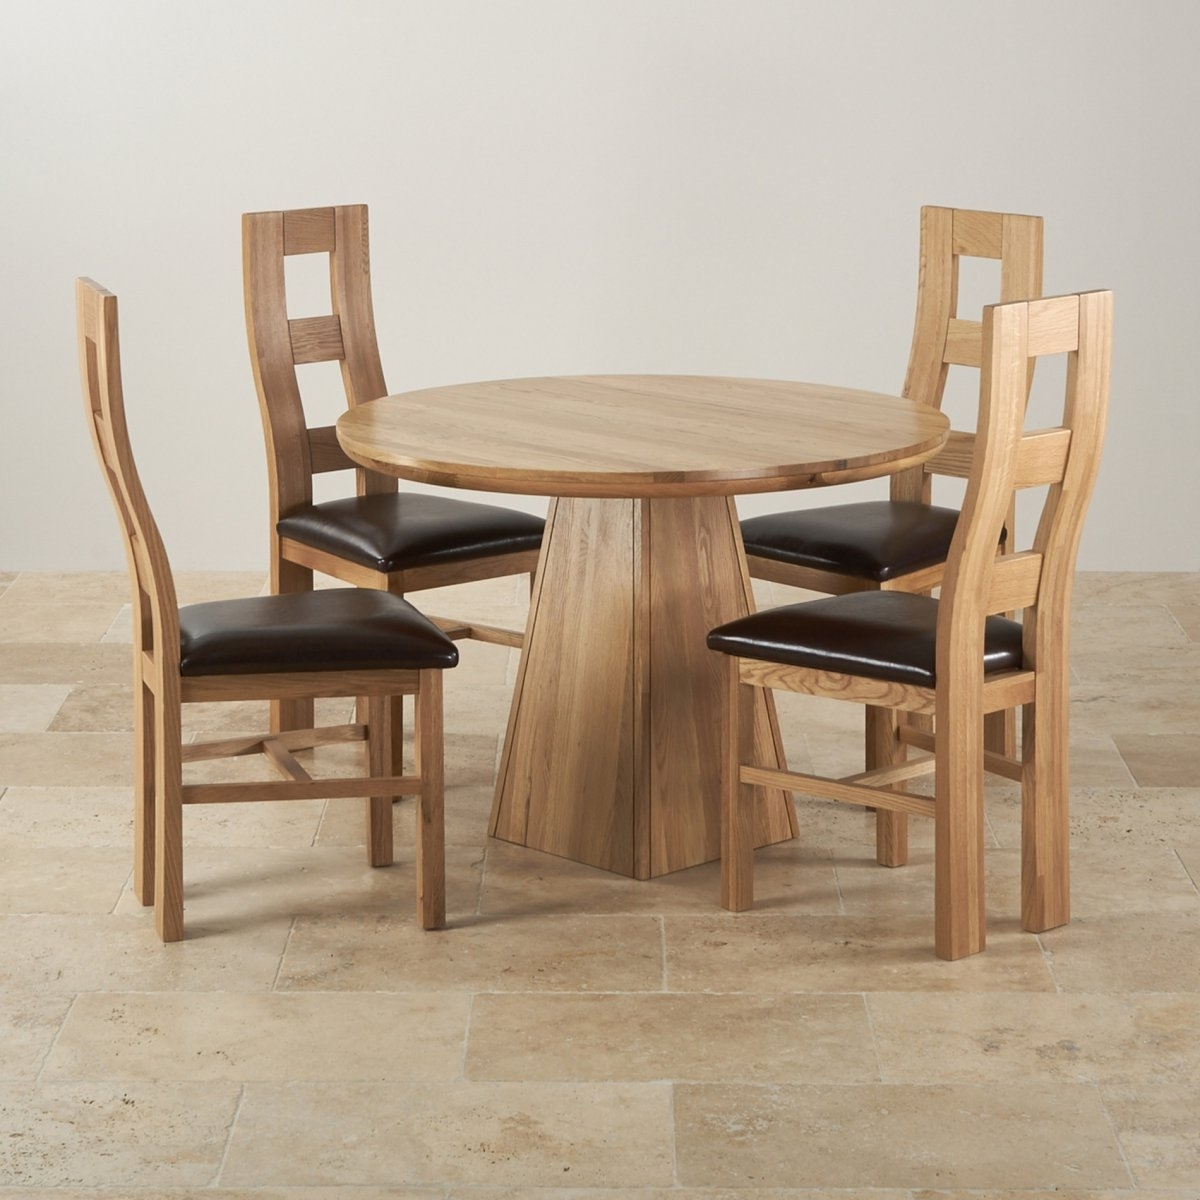 3Ft Dining Tables throughout Well known Provence Solid Oak Dining Set 3Ft 7Quot Table With 4 Chairs Luxury